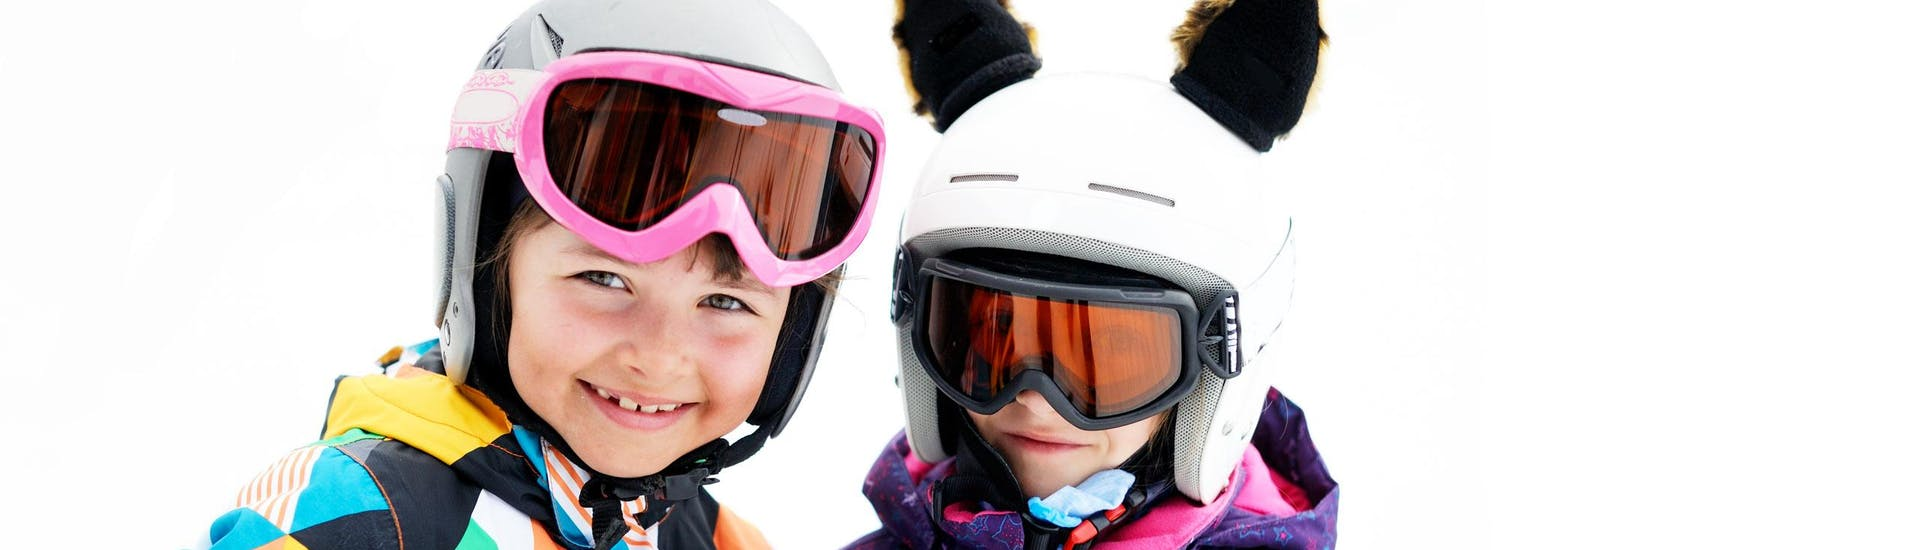 Two young children smiling at the camera during one of the Kids Ski Lessons (4-5 y.) für All Levels organised by Alpin Skischule Oberstdorf.